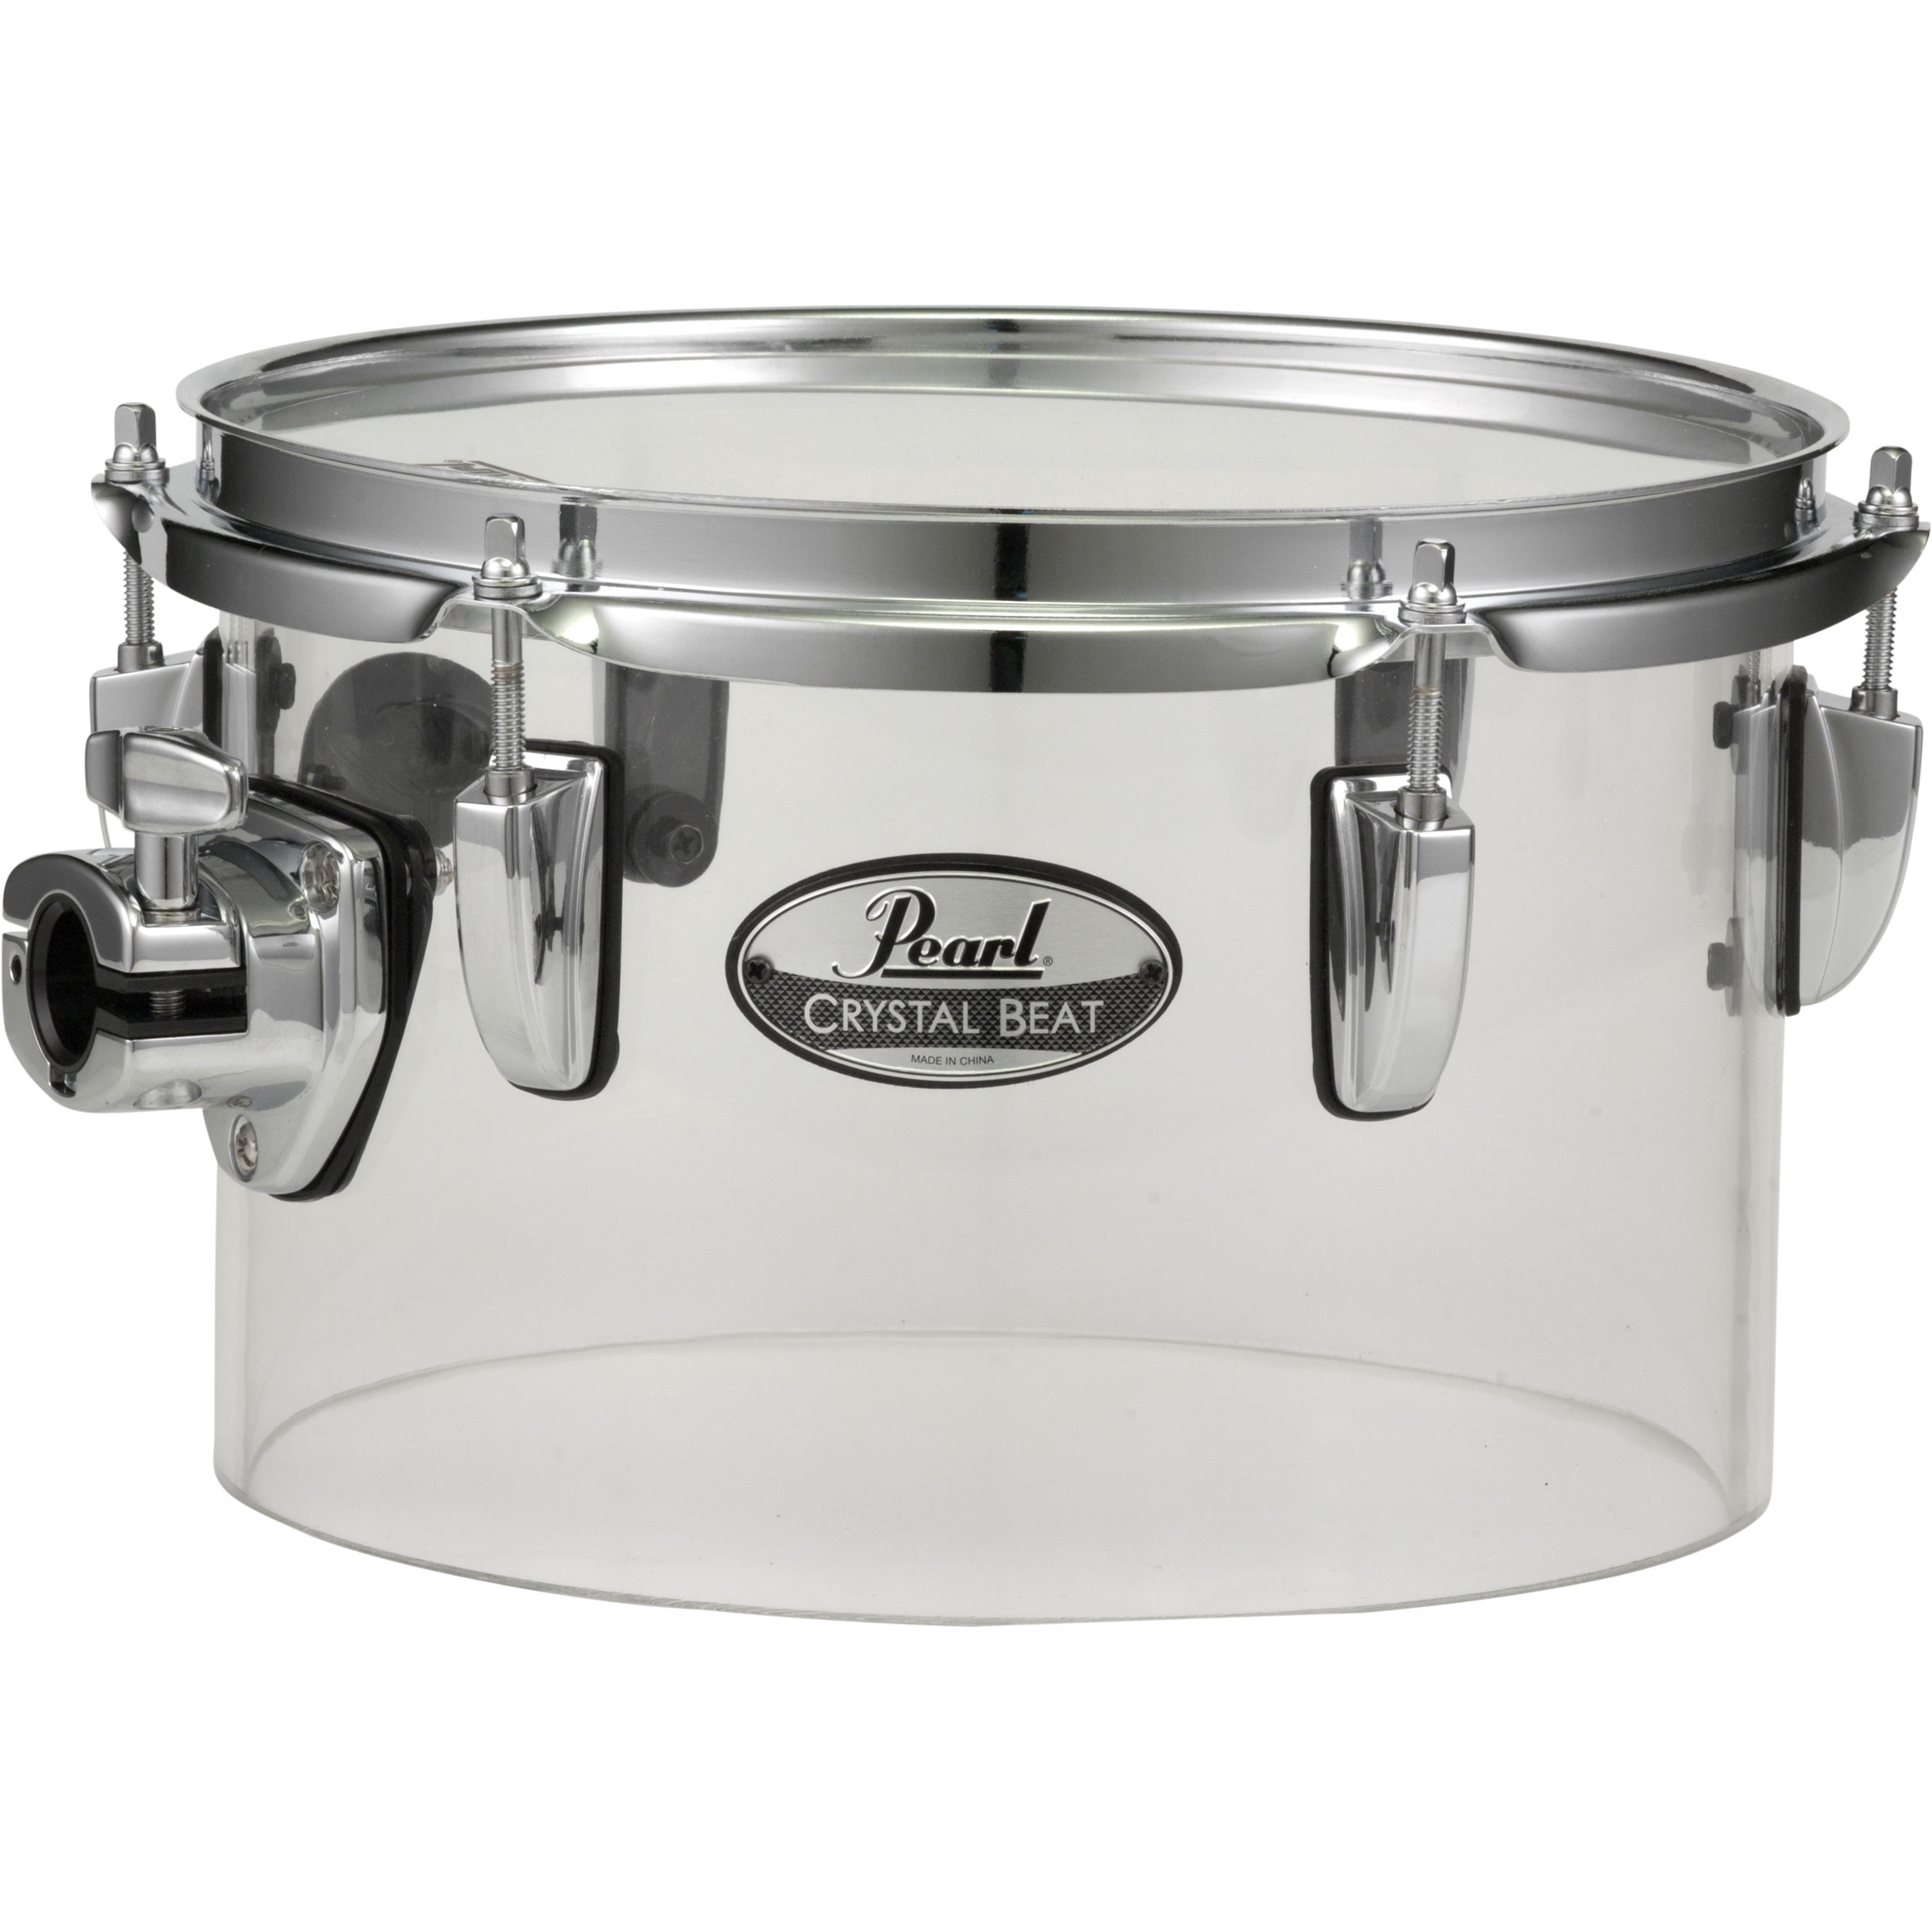 "Pearl 10"" (Diameter) x 6.5"" (Deep) Crystal Beat Single-Headed Concert Tom in Ultra Clear"